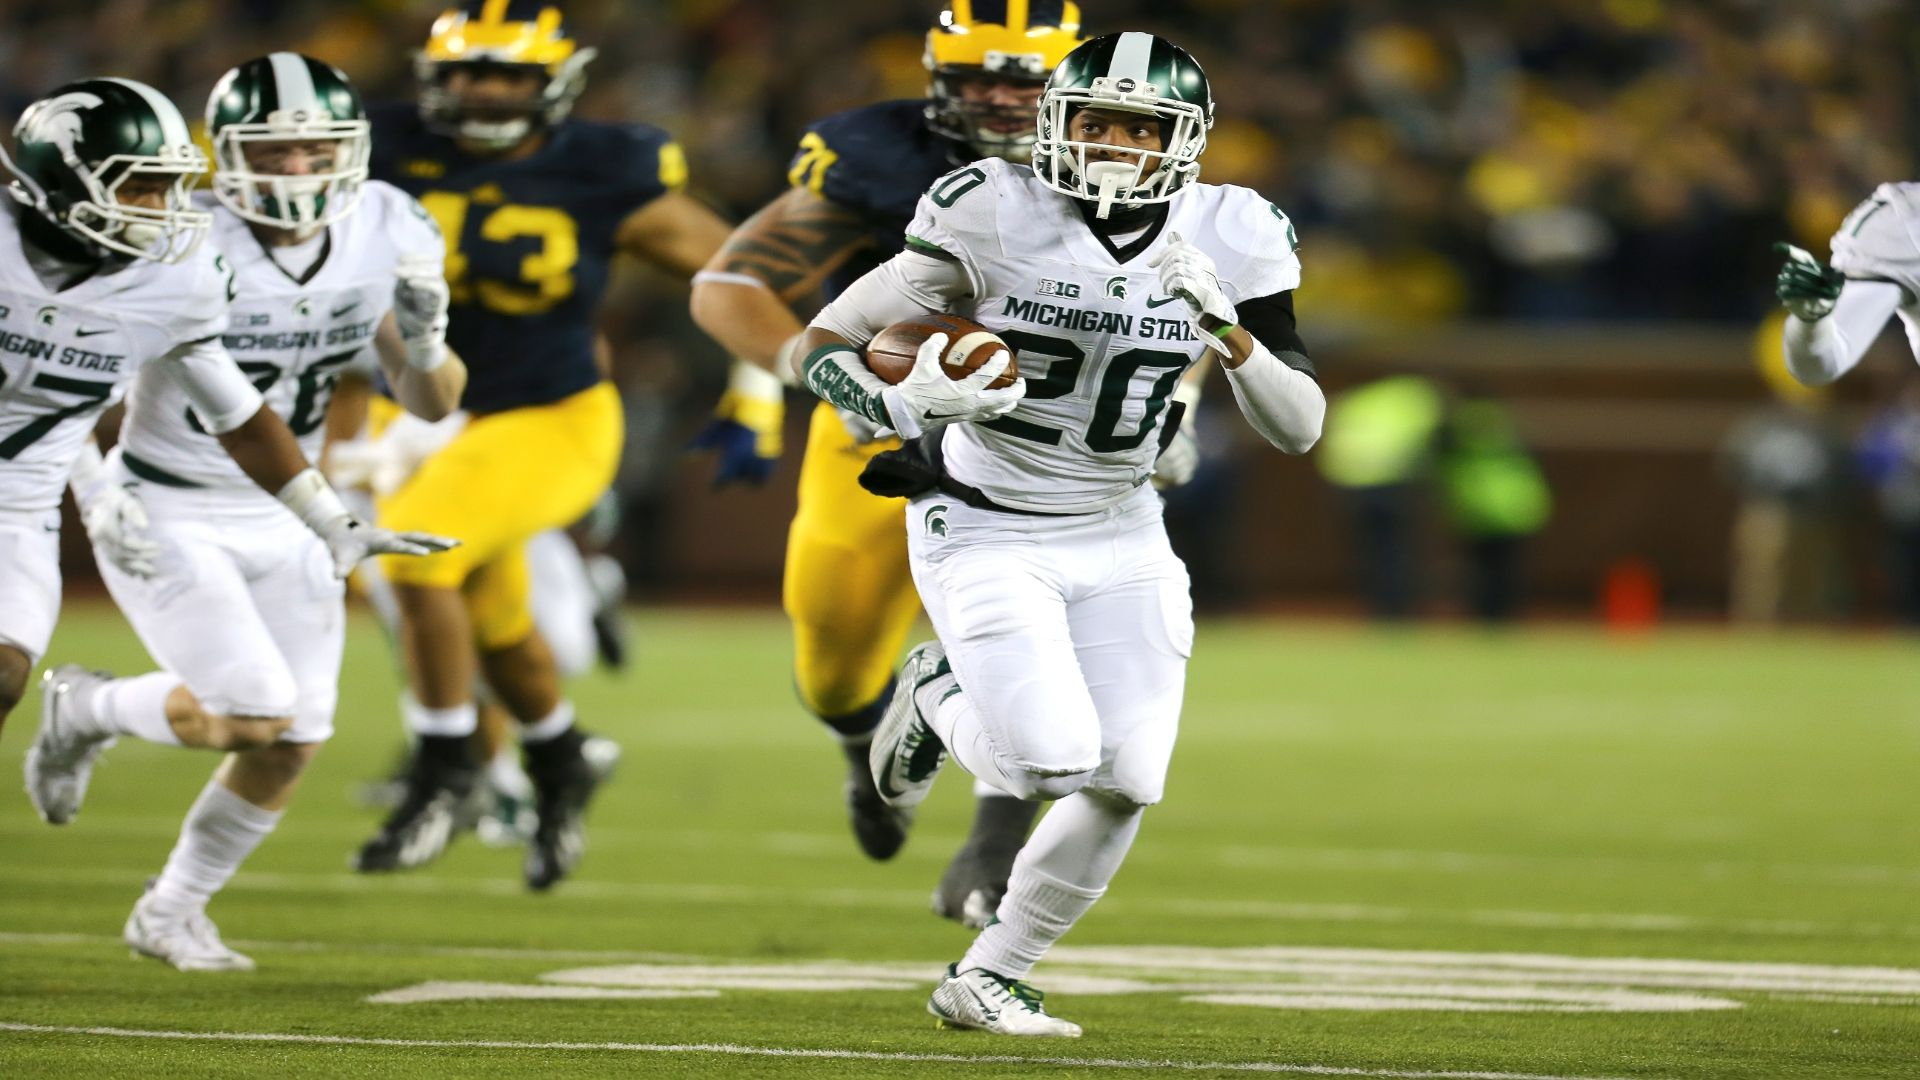 Spartans' incredible walk-off win vs. Wolverines in 2015